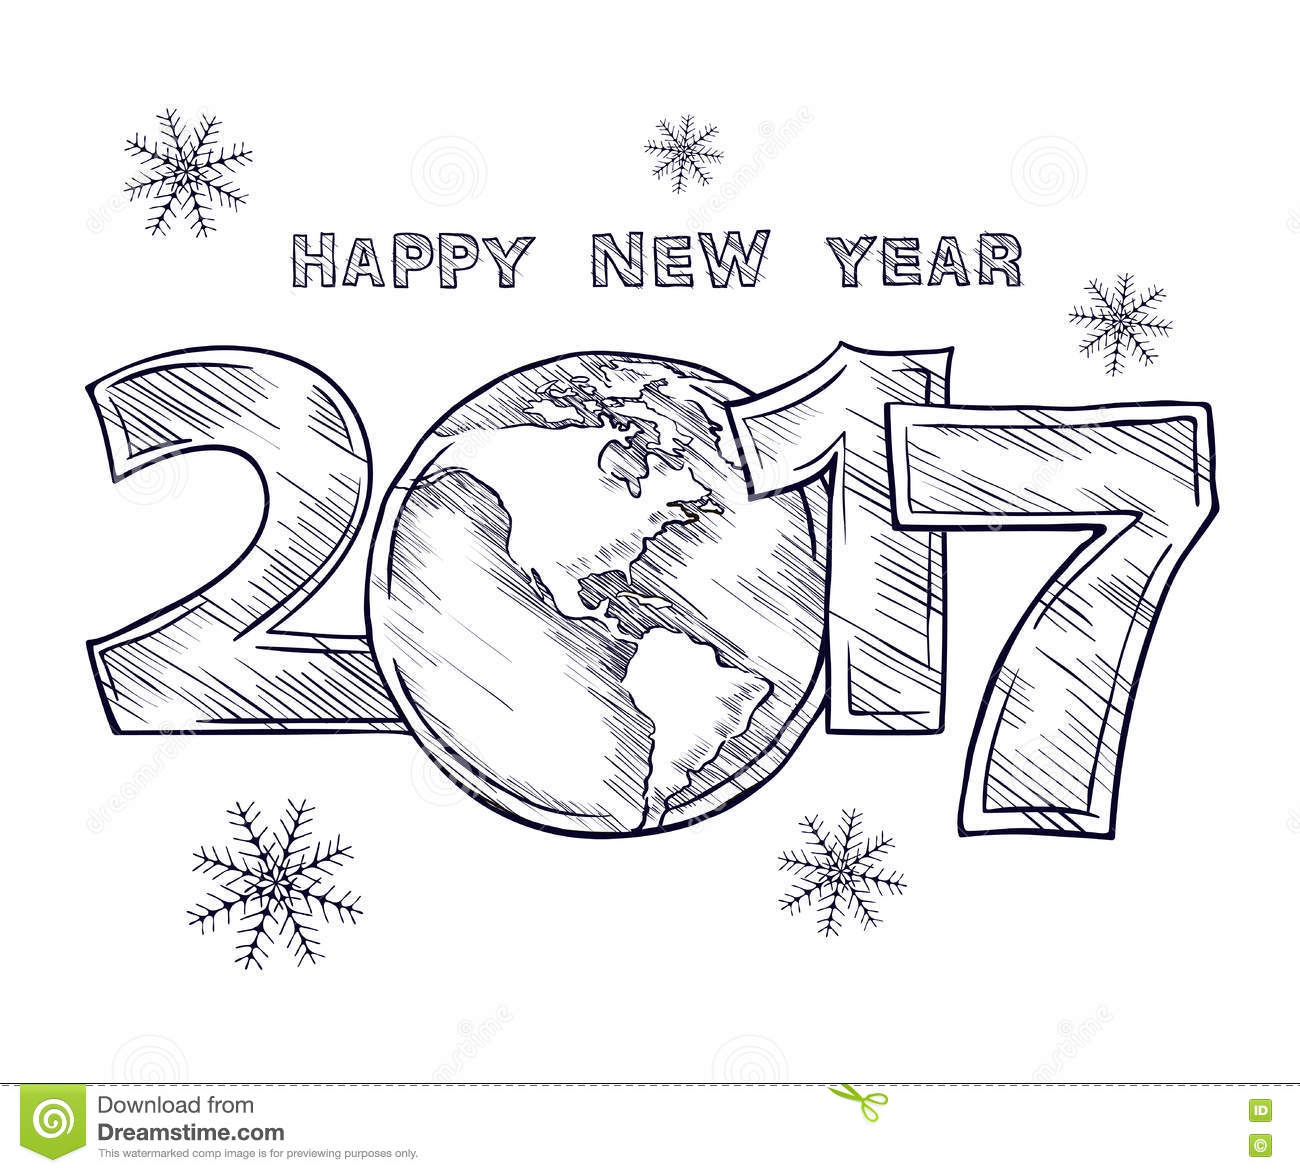 Calendar Design Drawing : Happy new year sketch globe outline drawing stock